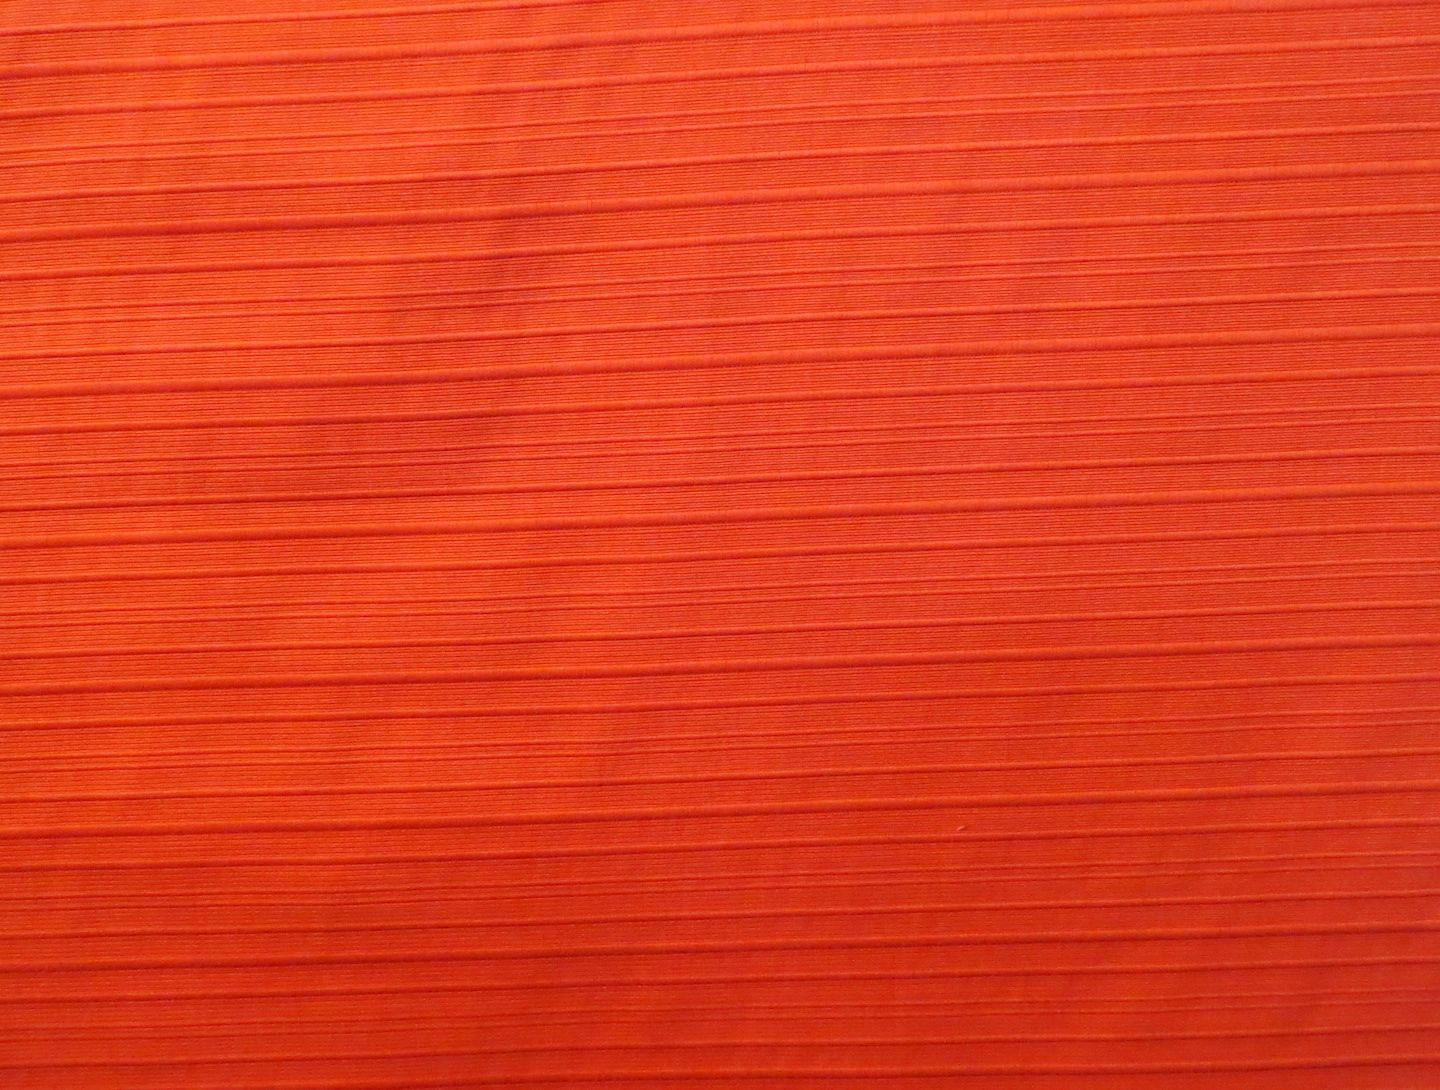 Coral Ottoman Textured Stripes by Nicole Miller